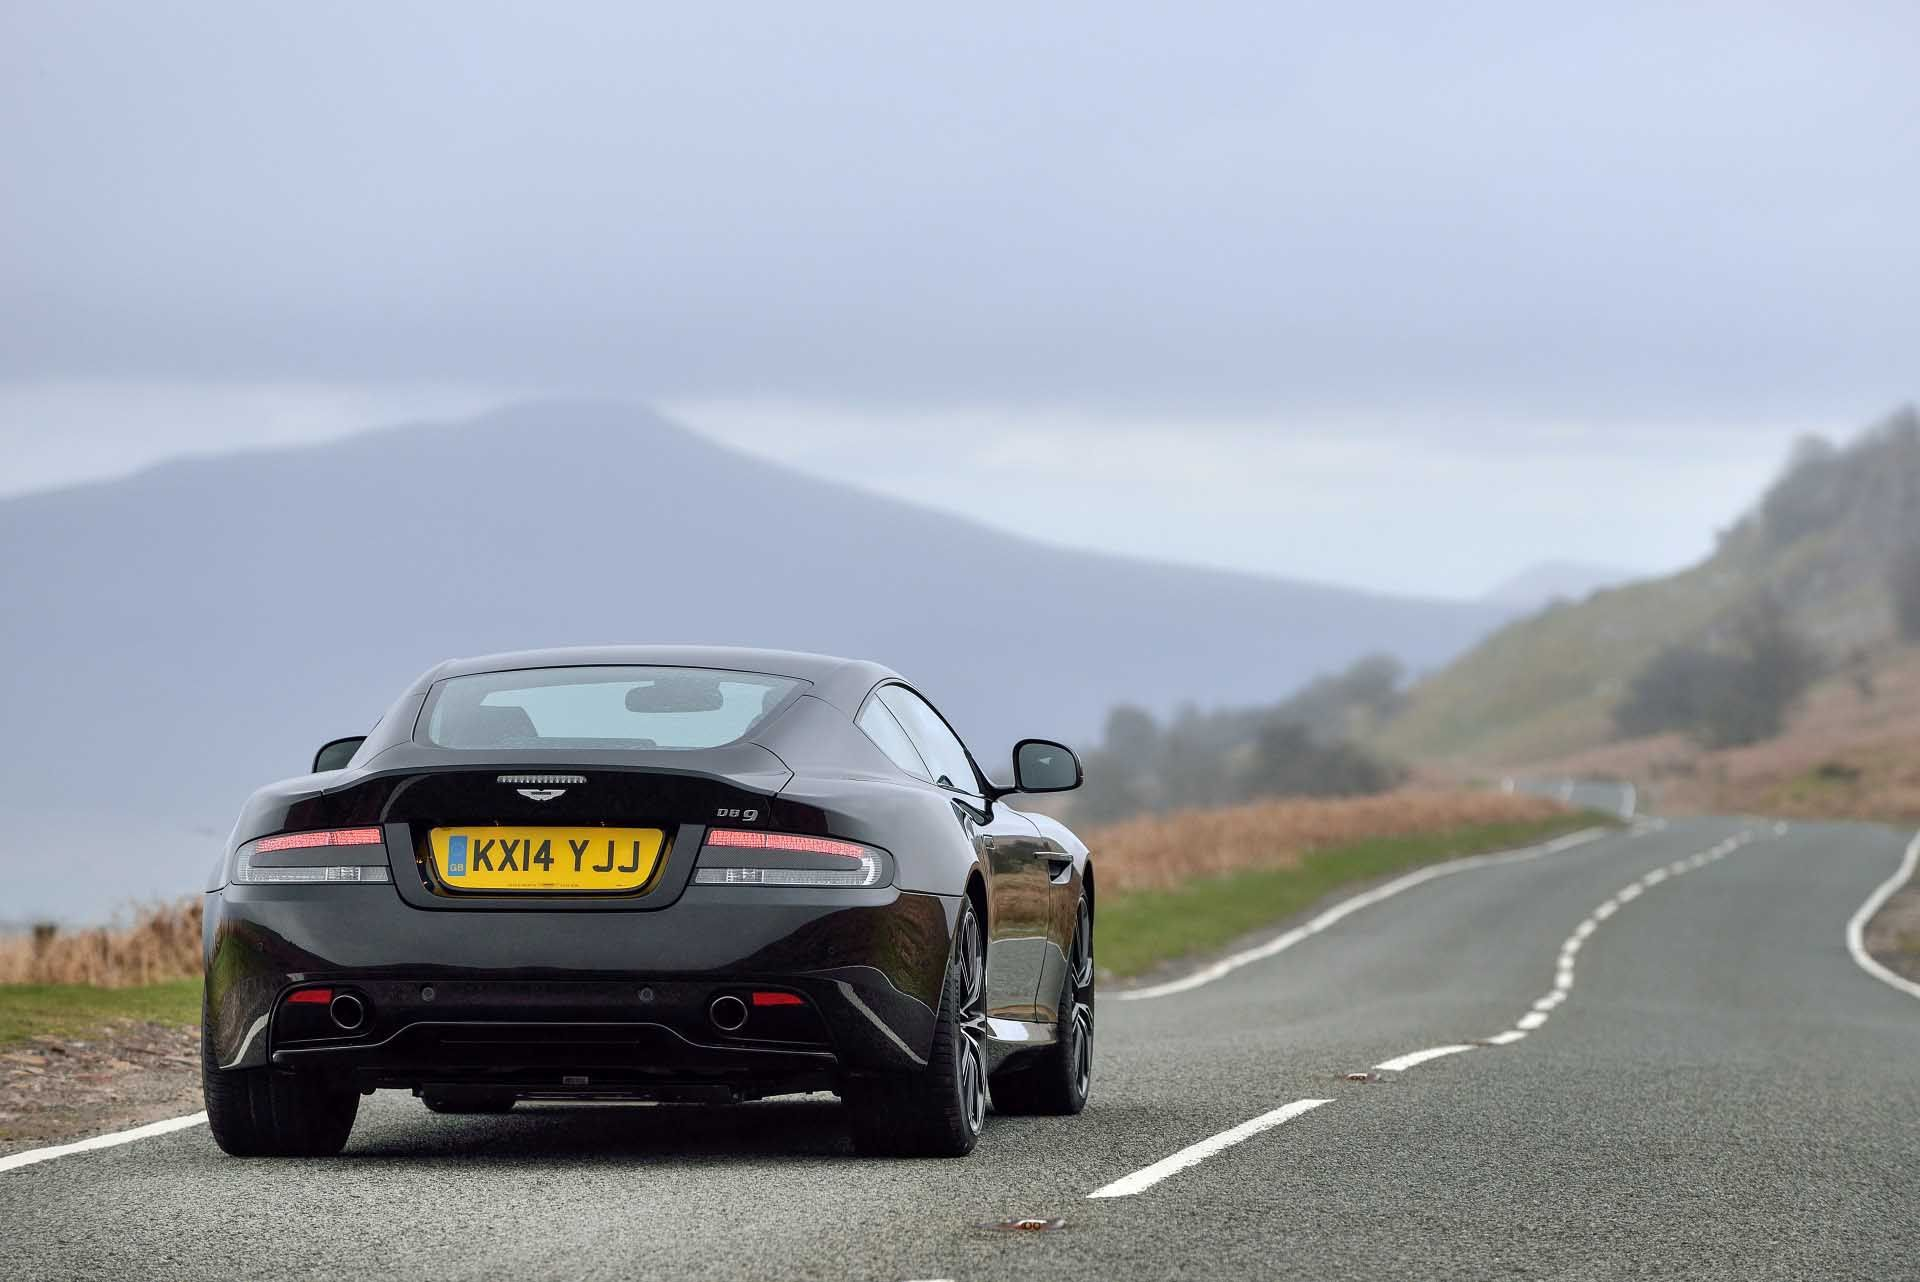 10 Great Aston Martin DB9 Carbon Edition Rear View